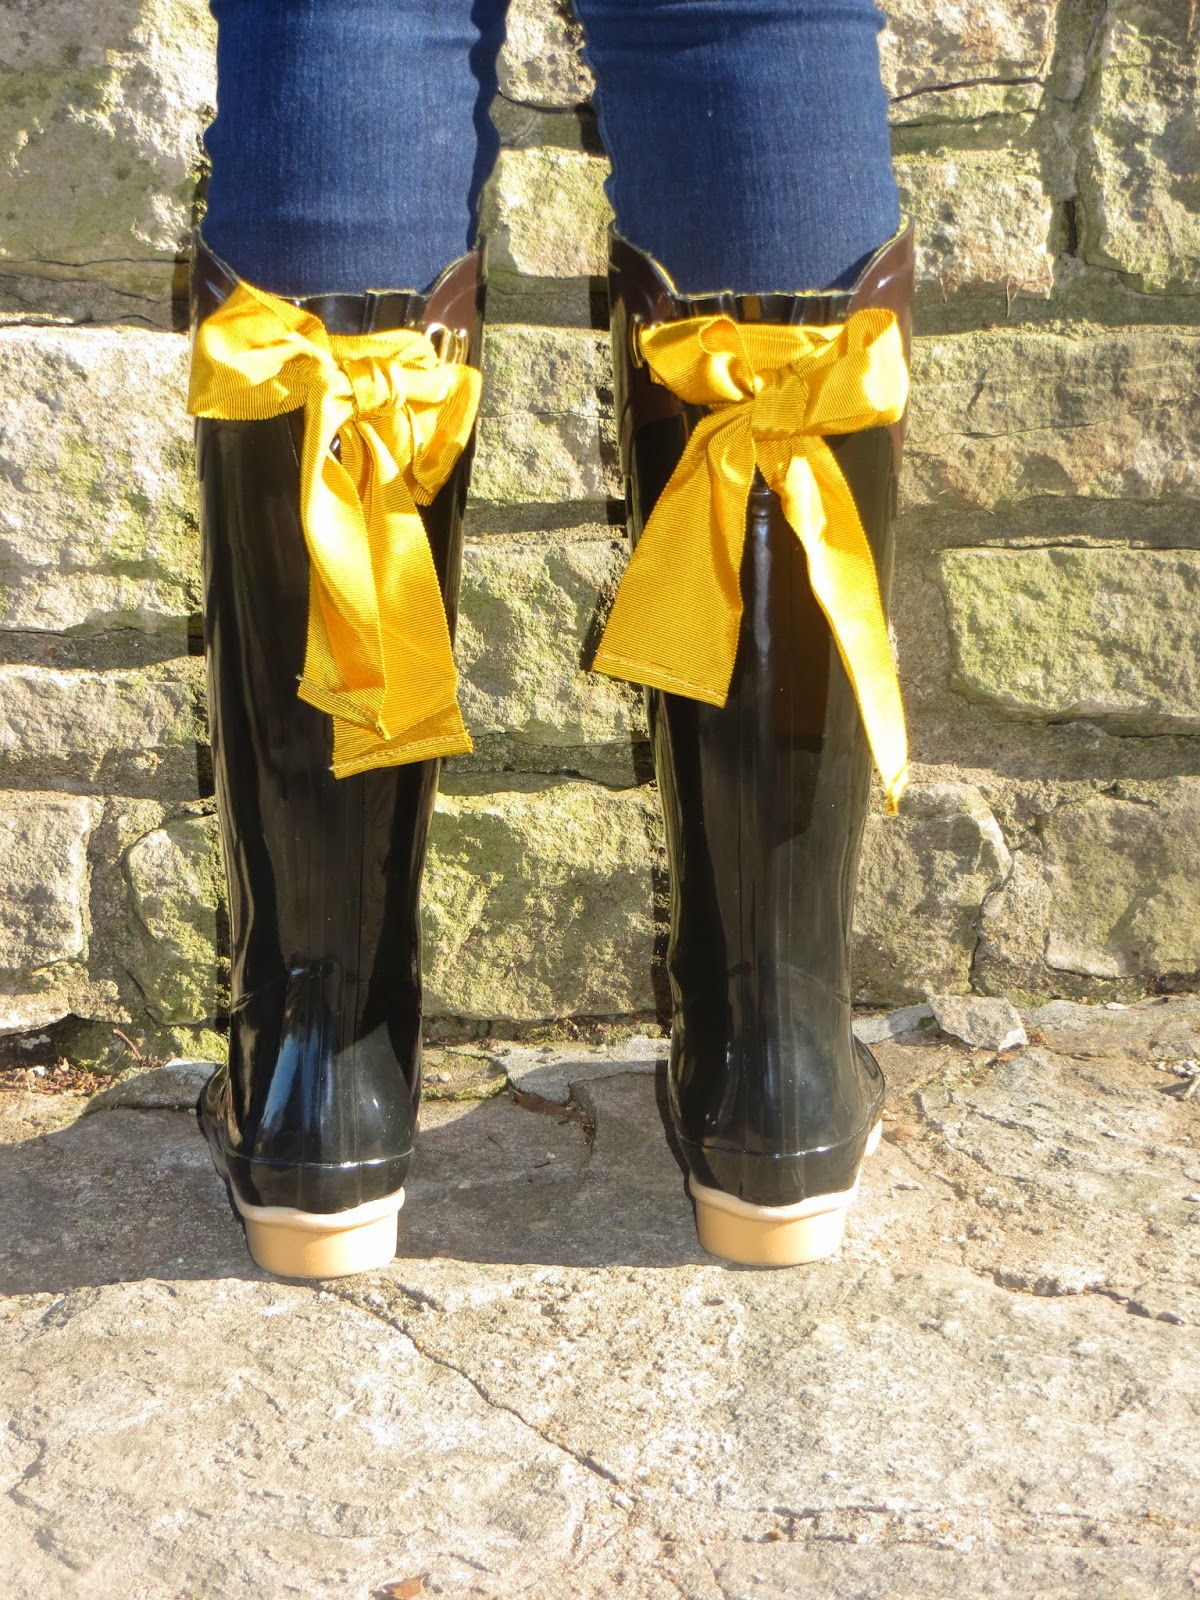 Wellies Rain Boots With Bows